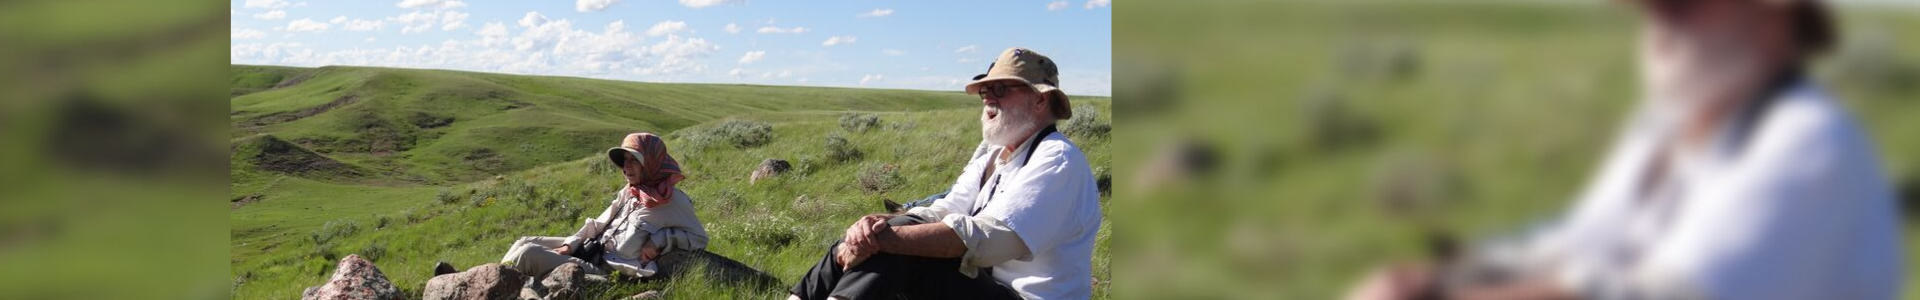 In memory of Graeme Gibson, our Friend and Bird Champion